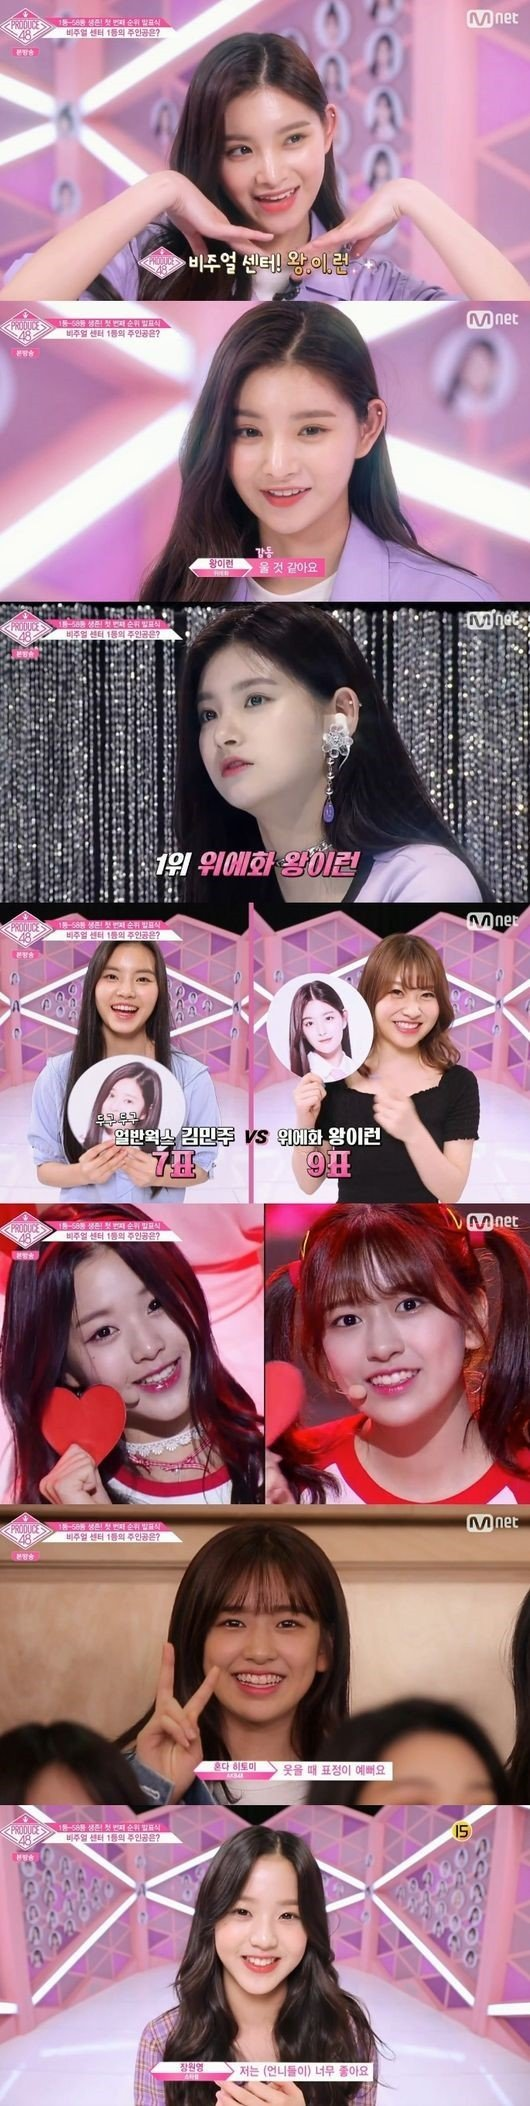 Who is voted the top visual by fellow trainees on Produce 48? | My News